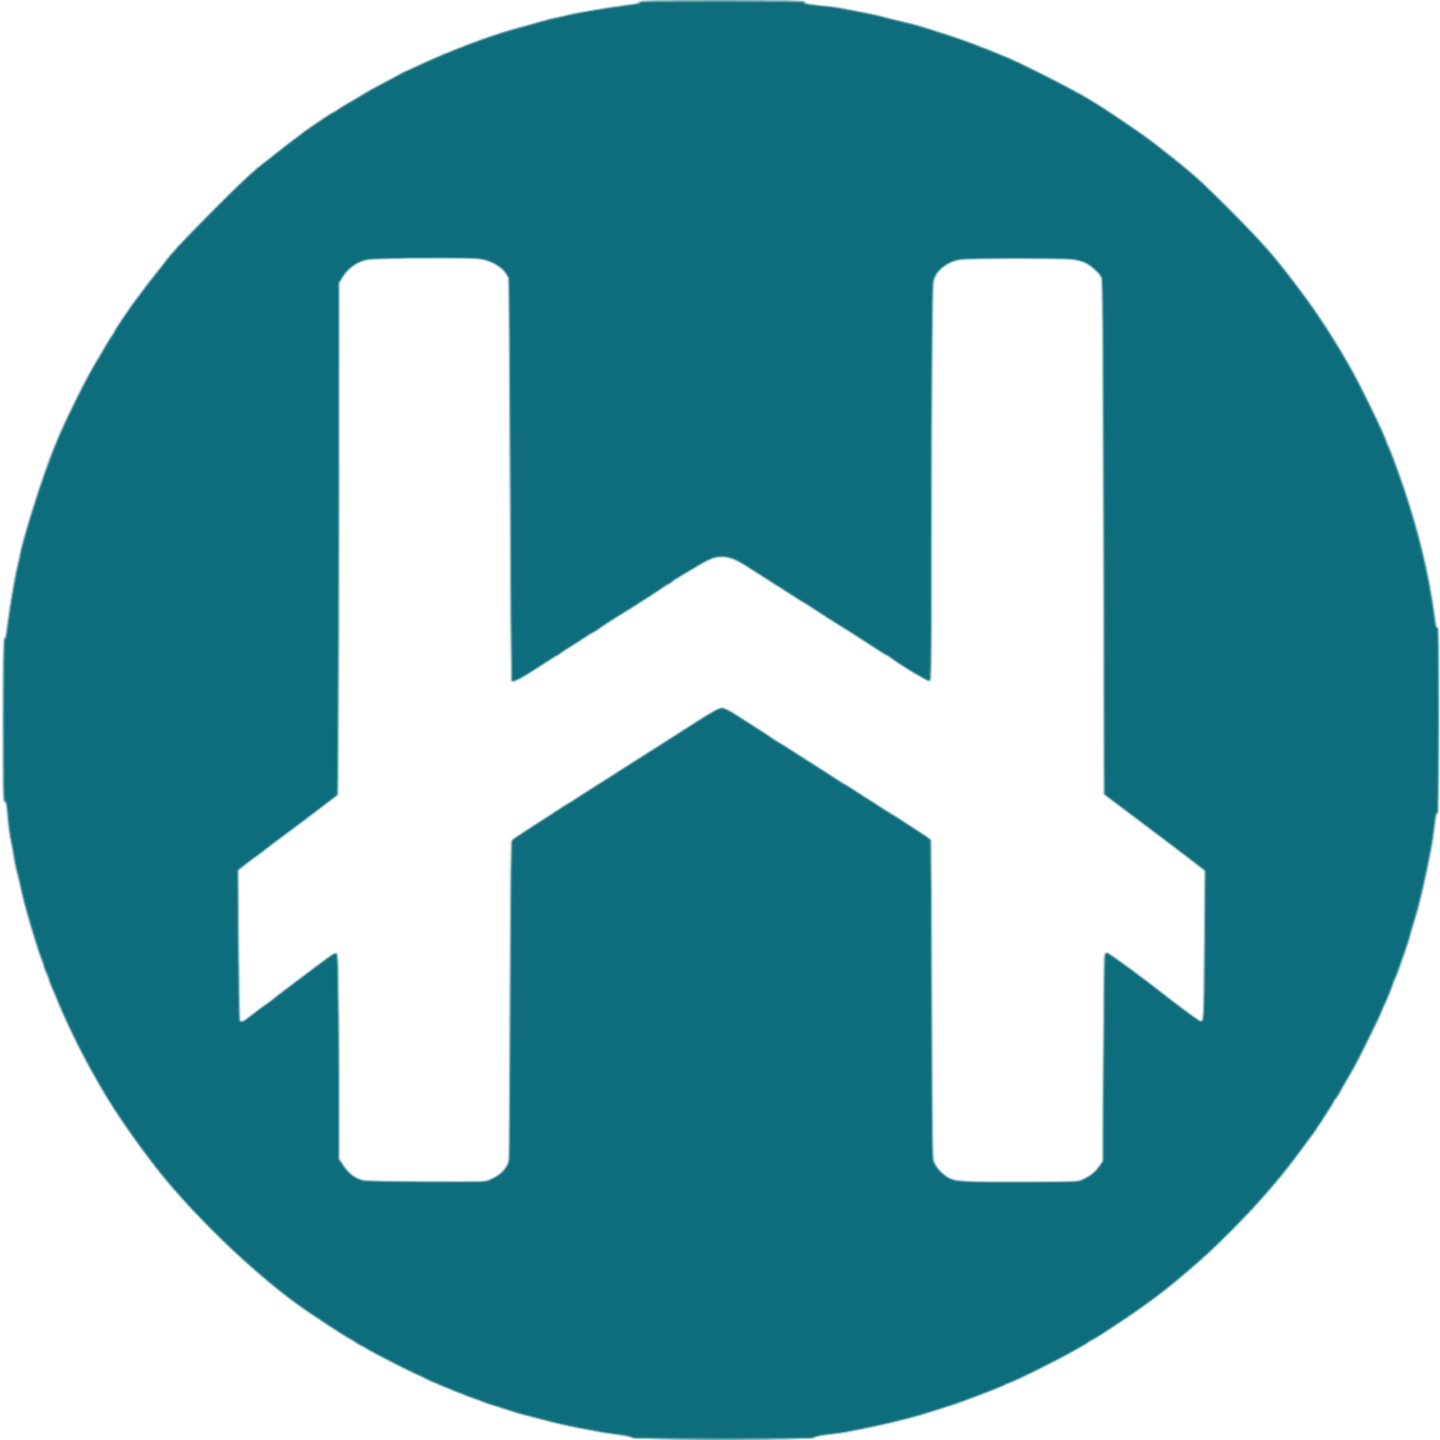 HOPE-Icon-1440.png